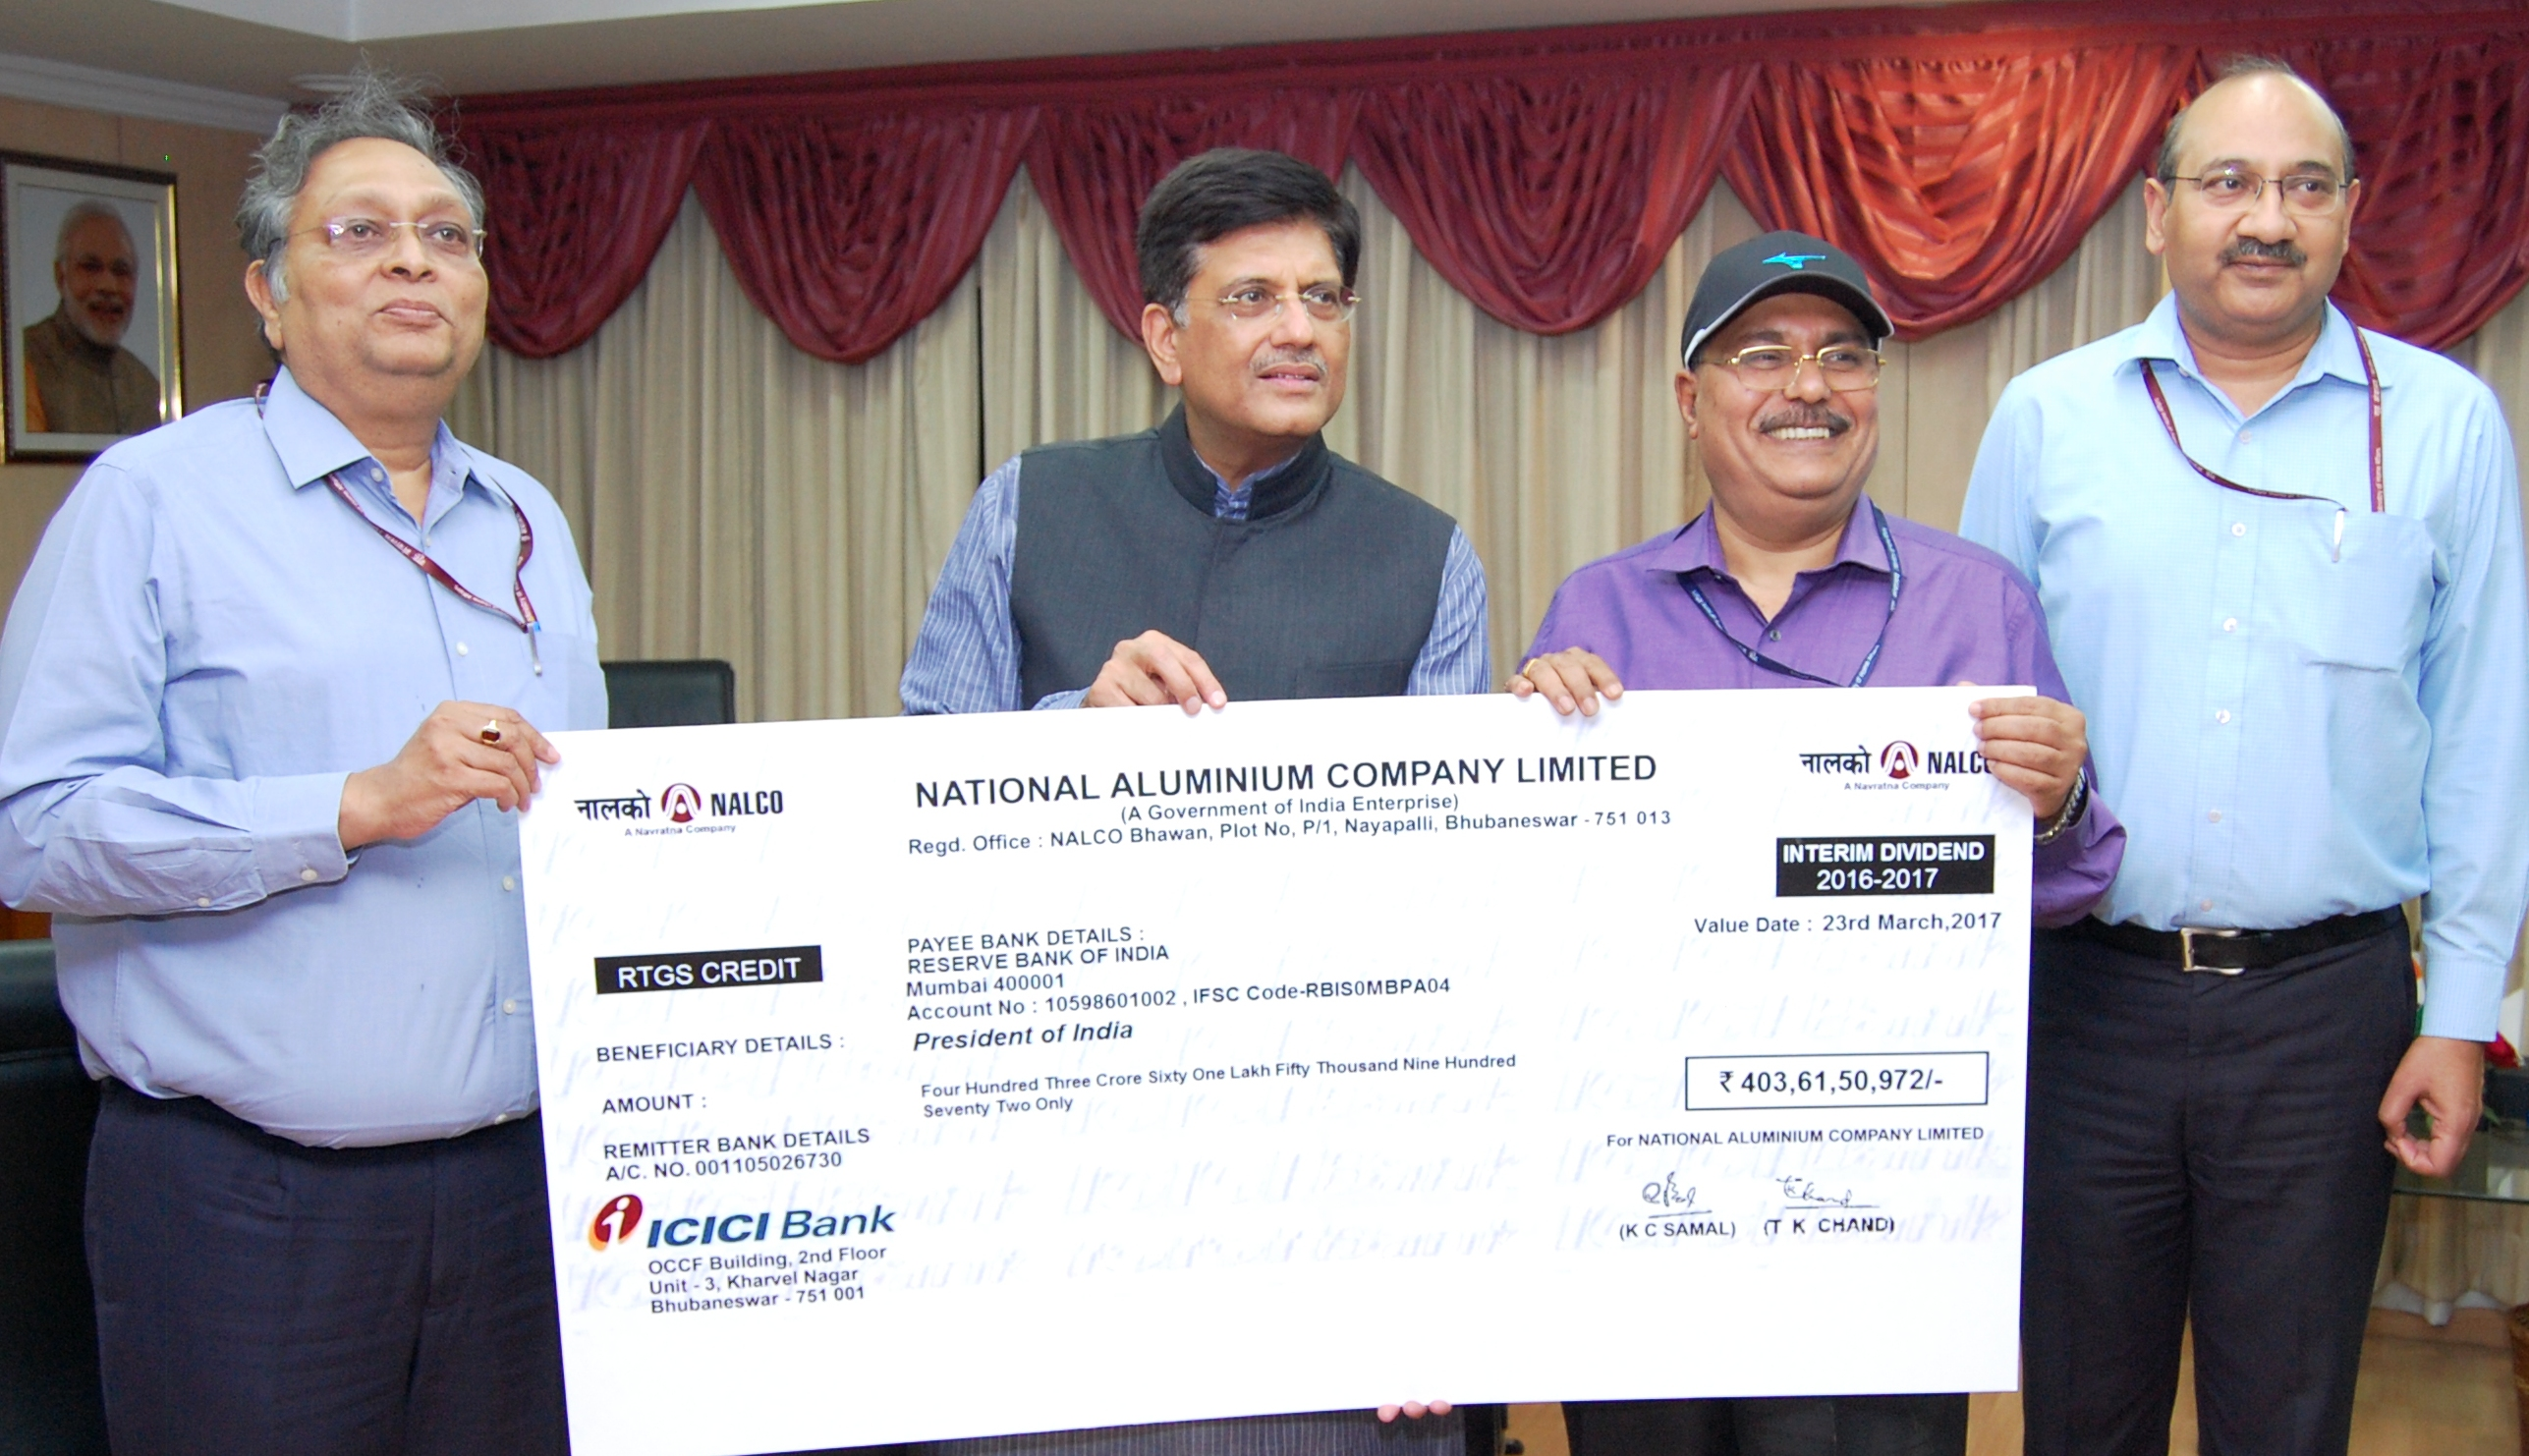 NALCO pays rs.403.62 crore interim dividend to Union govt.